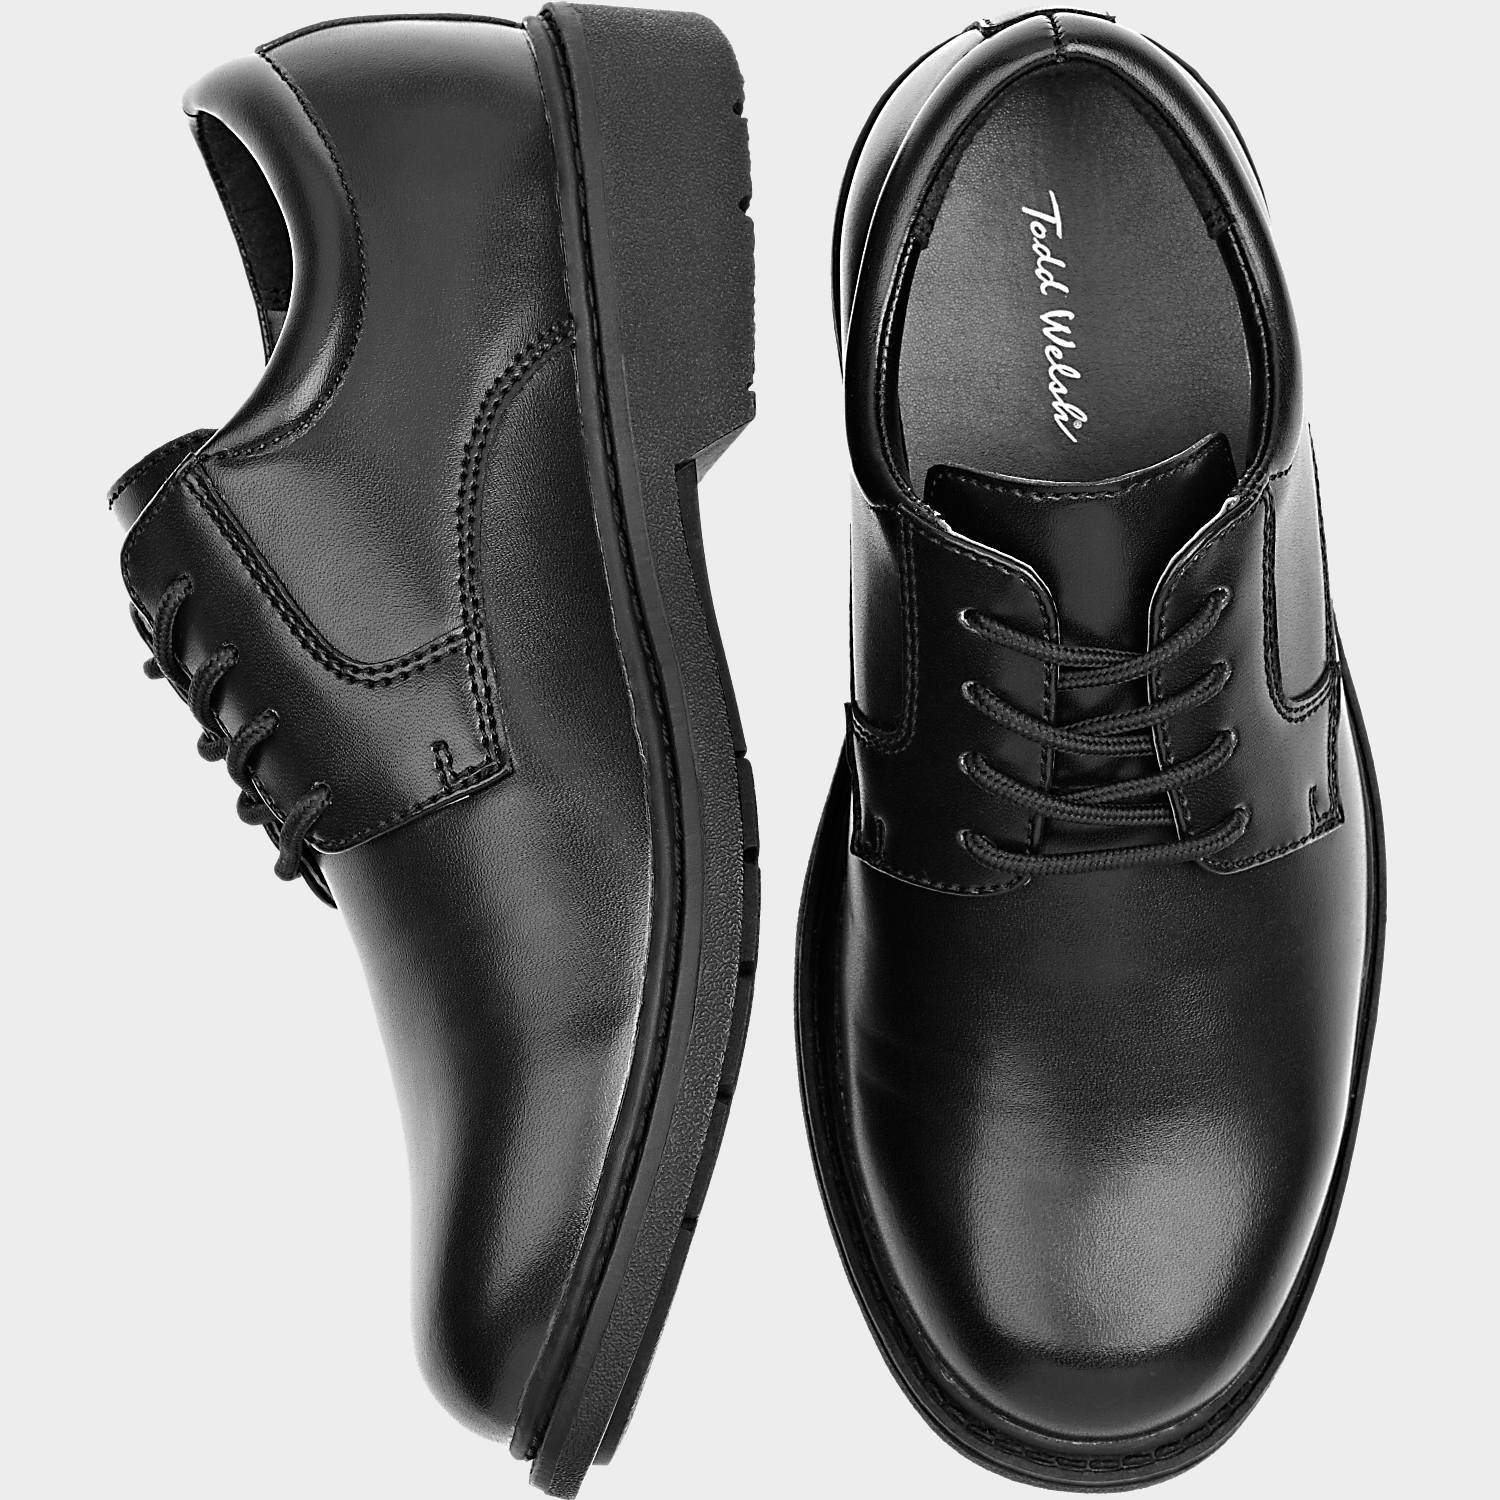 Todd Welsh Boys Black Oxford Lace-Up Shoes - Men's Boys' Shoes ...